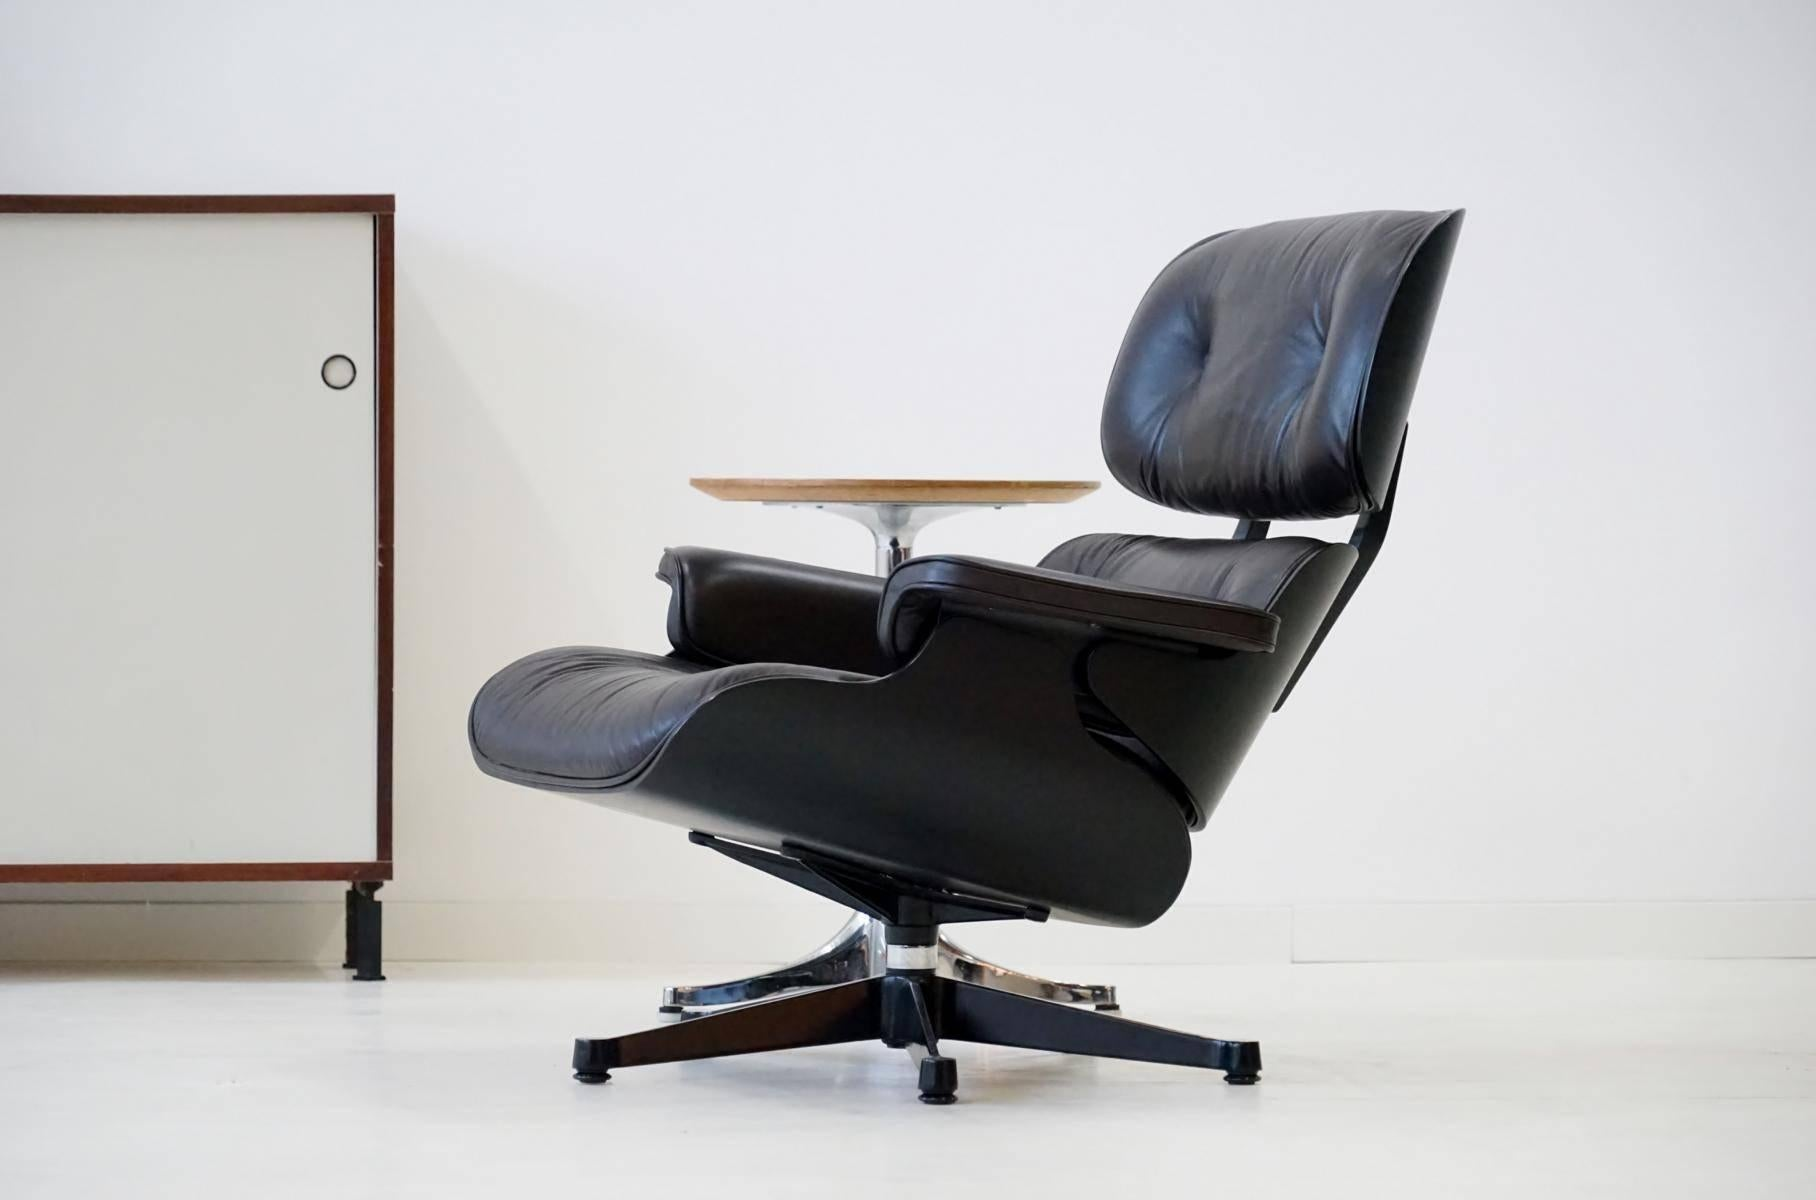 Vitra Chalres Eames : Original lounge chair by charles eames vitra from exhibition for